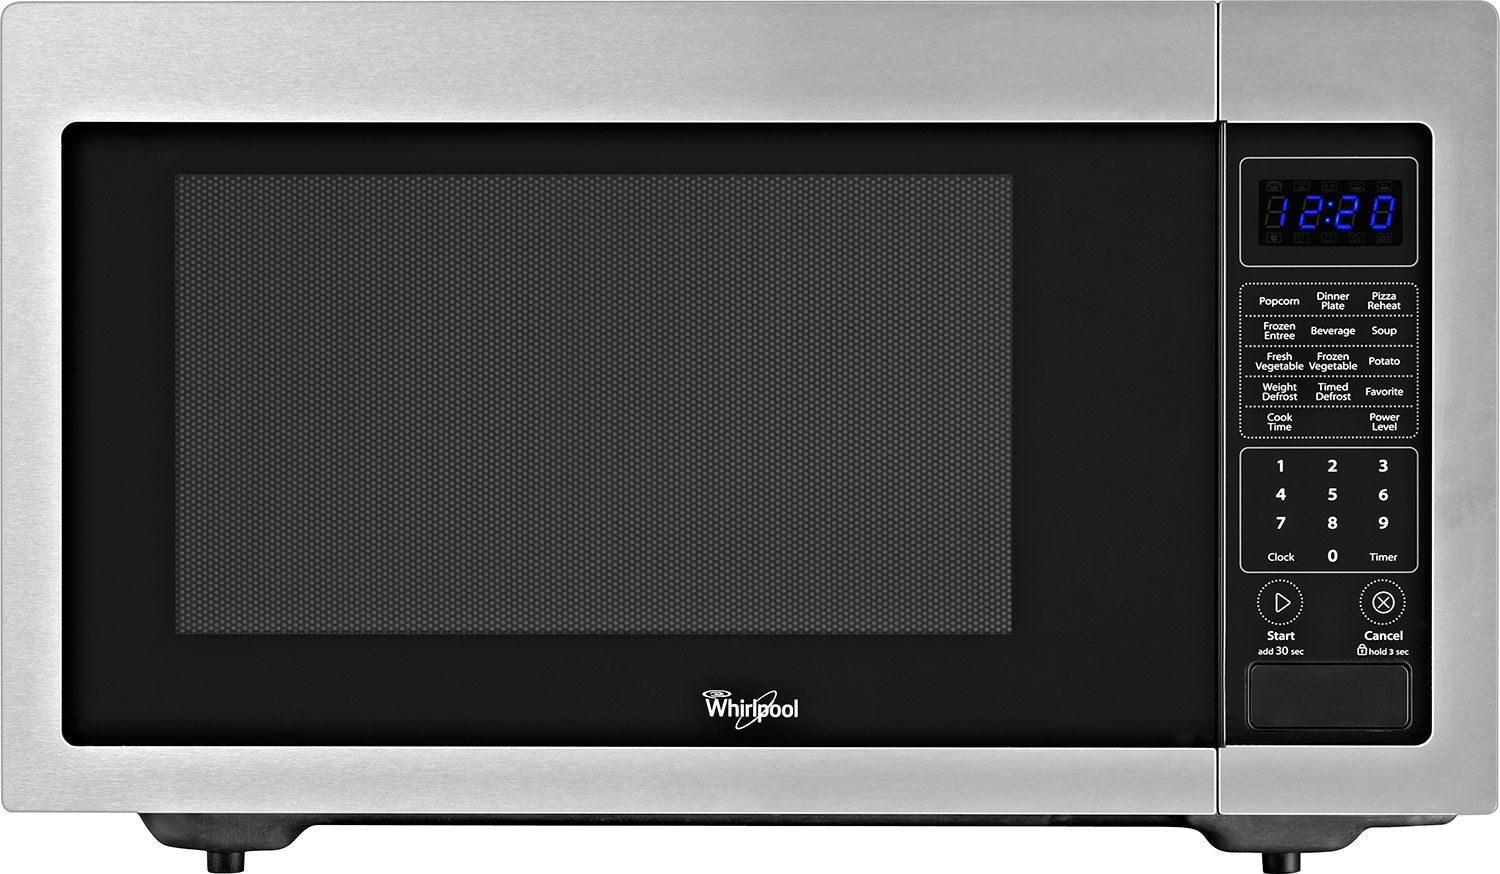 Cooking Products - Whirlpool® 1.6 Cu. Ft. Countertop Microwave – Stainless Steel